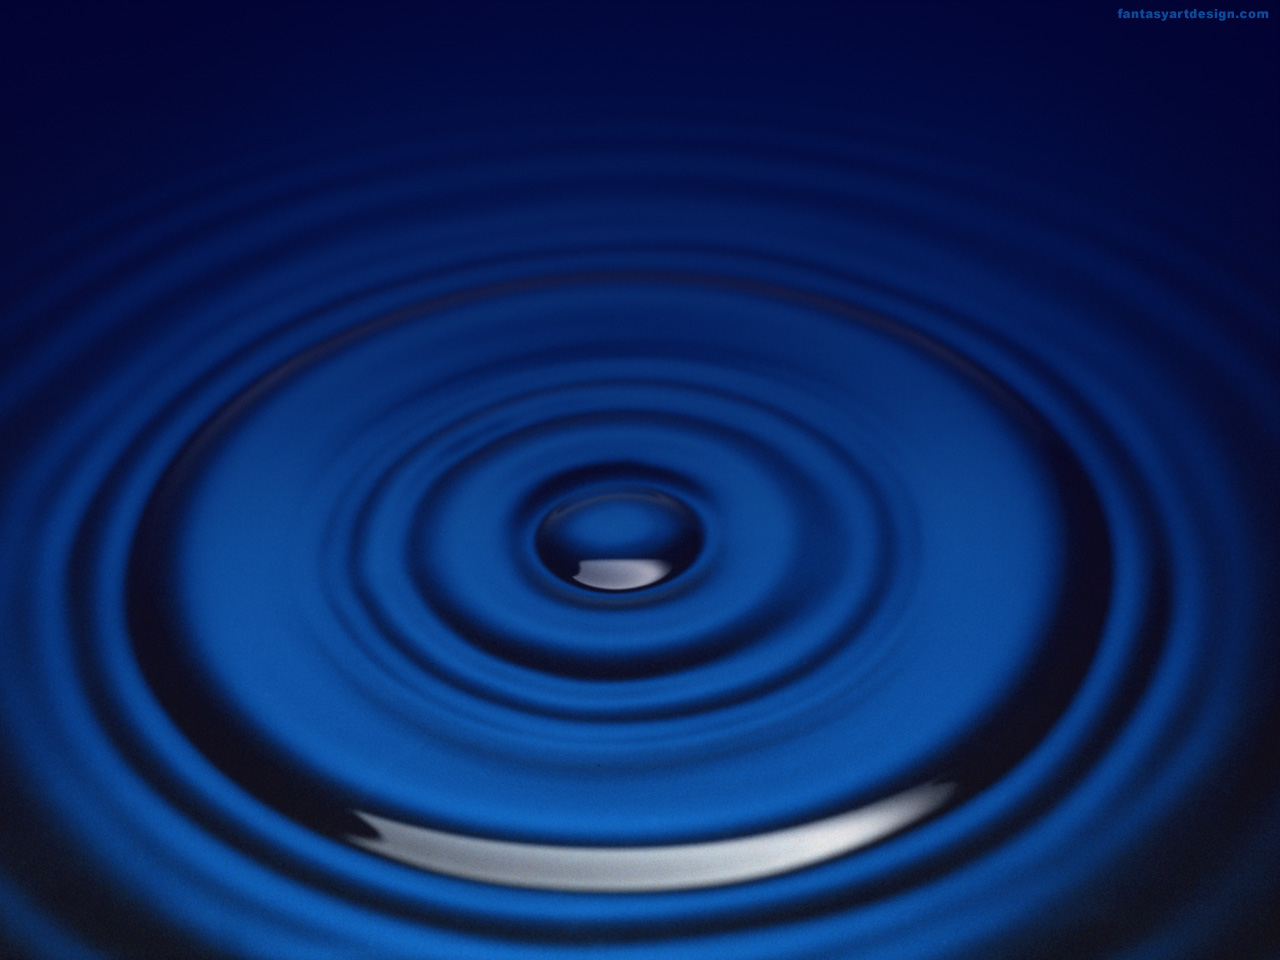 Abstract title ripple, 1280 x 960pix wallpaper Abstract ...